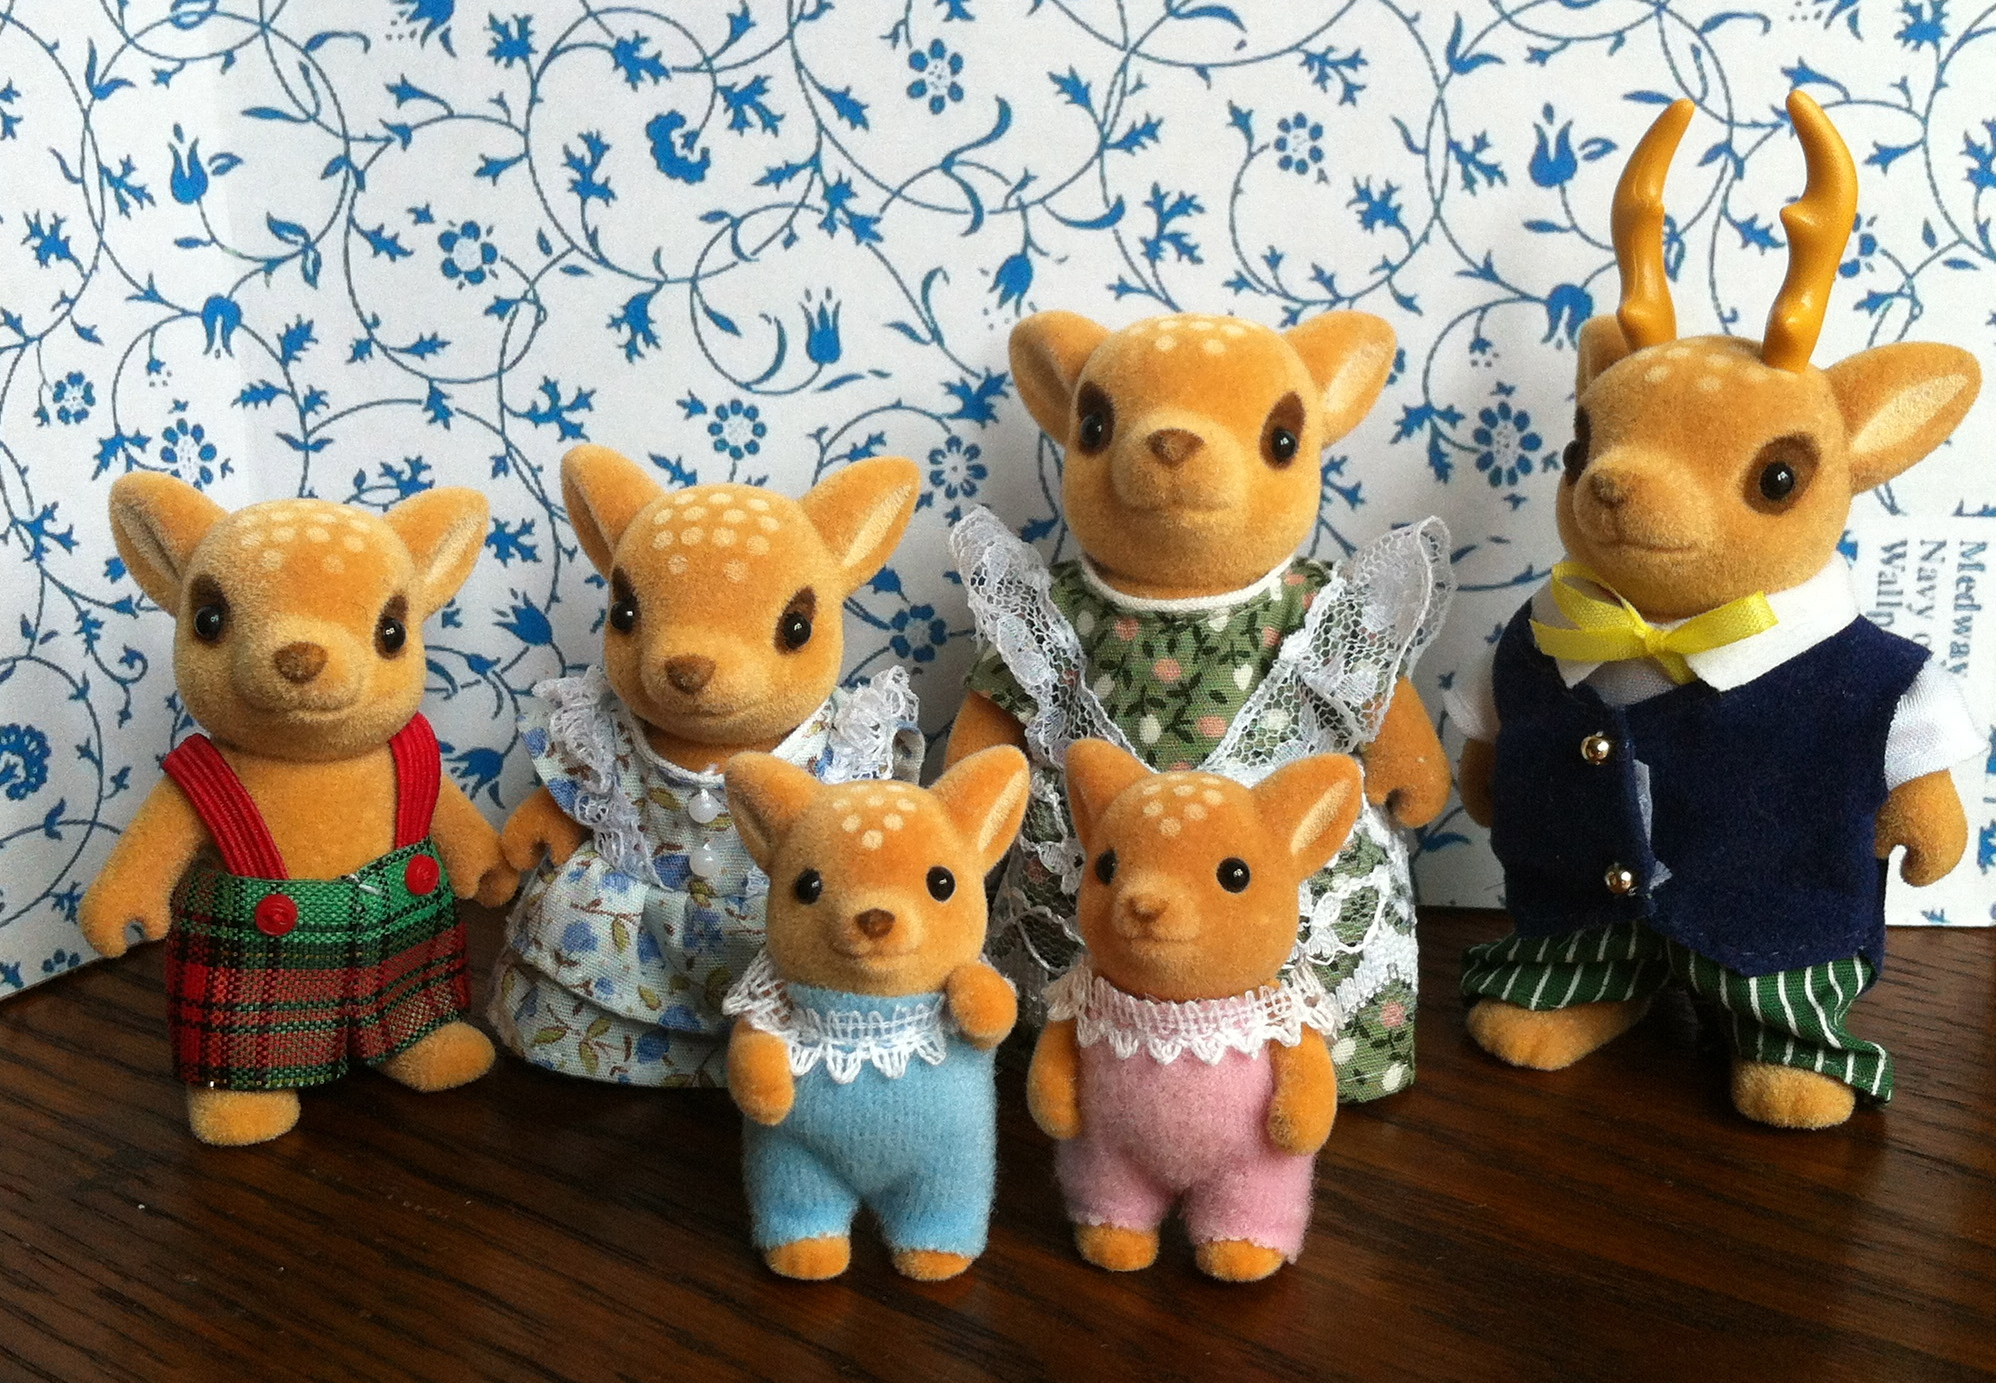 Teddy Bears Amp Friends Sylvanian Families Moss Reindeer Family Of 4 Mint Condition With